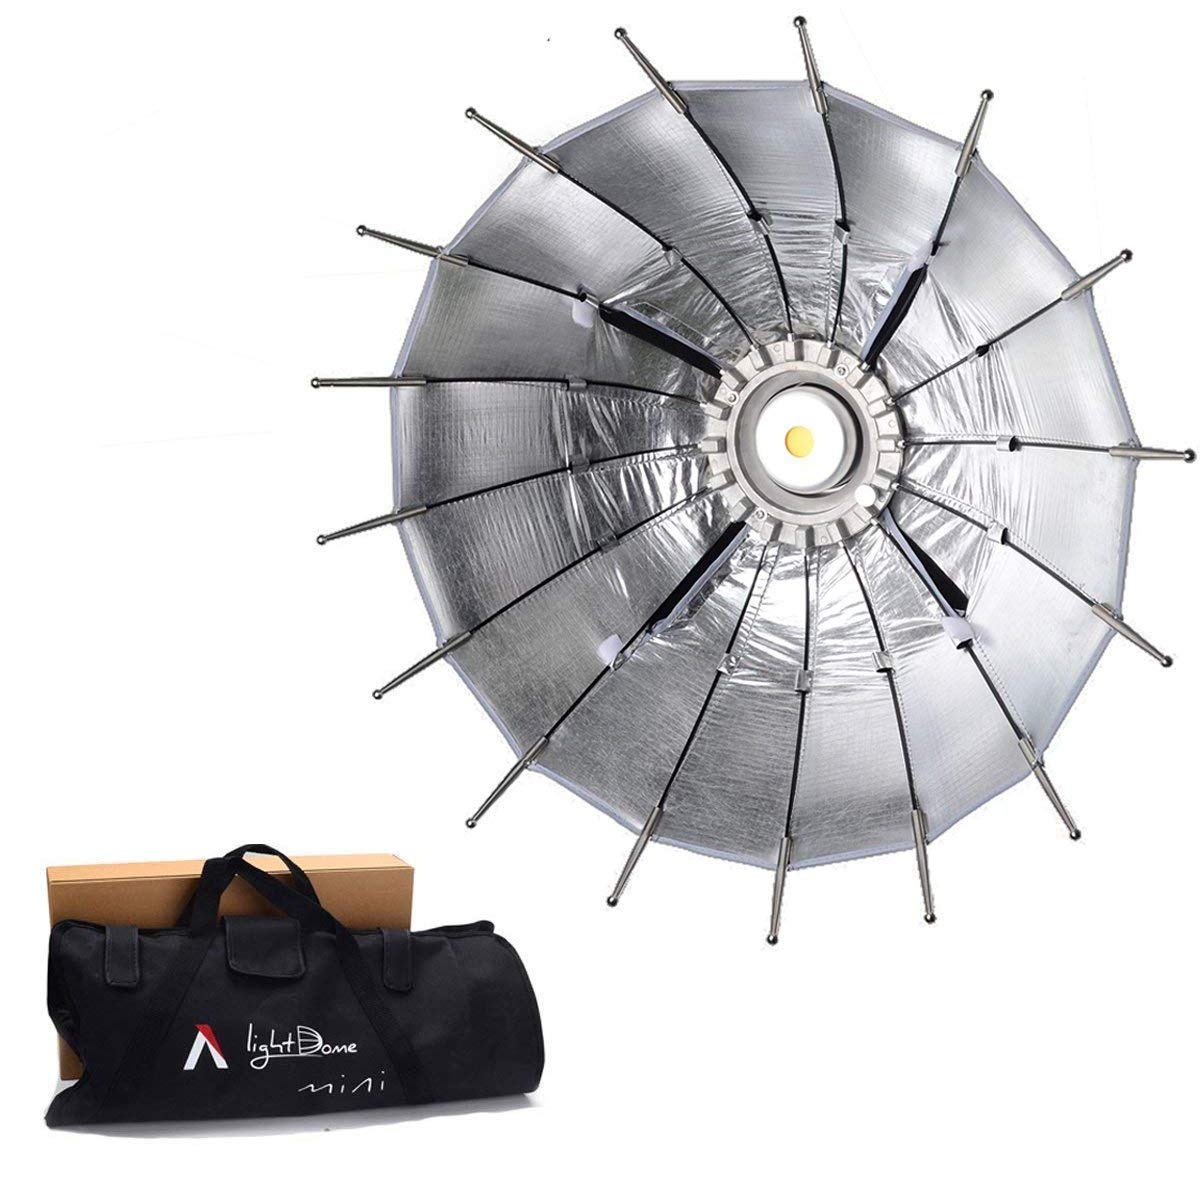 Aputure Light Dome Mini 27 Inch Softbox for Aputure Lightstorm COB 120d 120t LS 300 and Other Bowens Mount LED Lights by Aputure (Image #1)